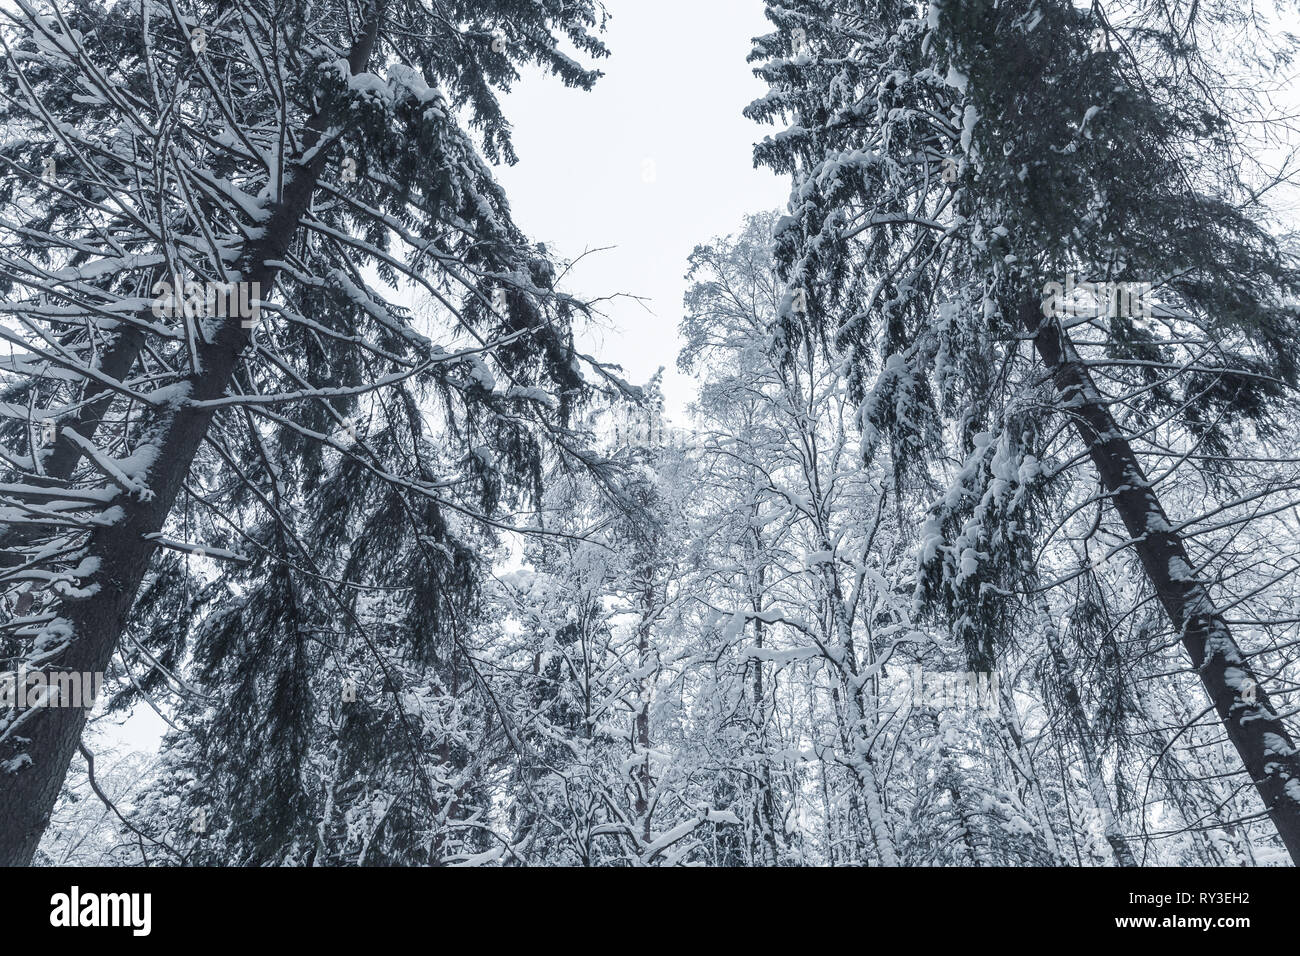 Snowy spruces. European forest in winter, background photo - Stock Image